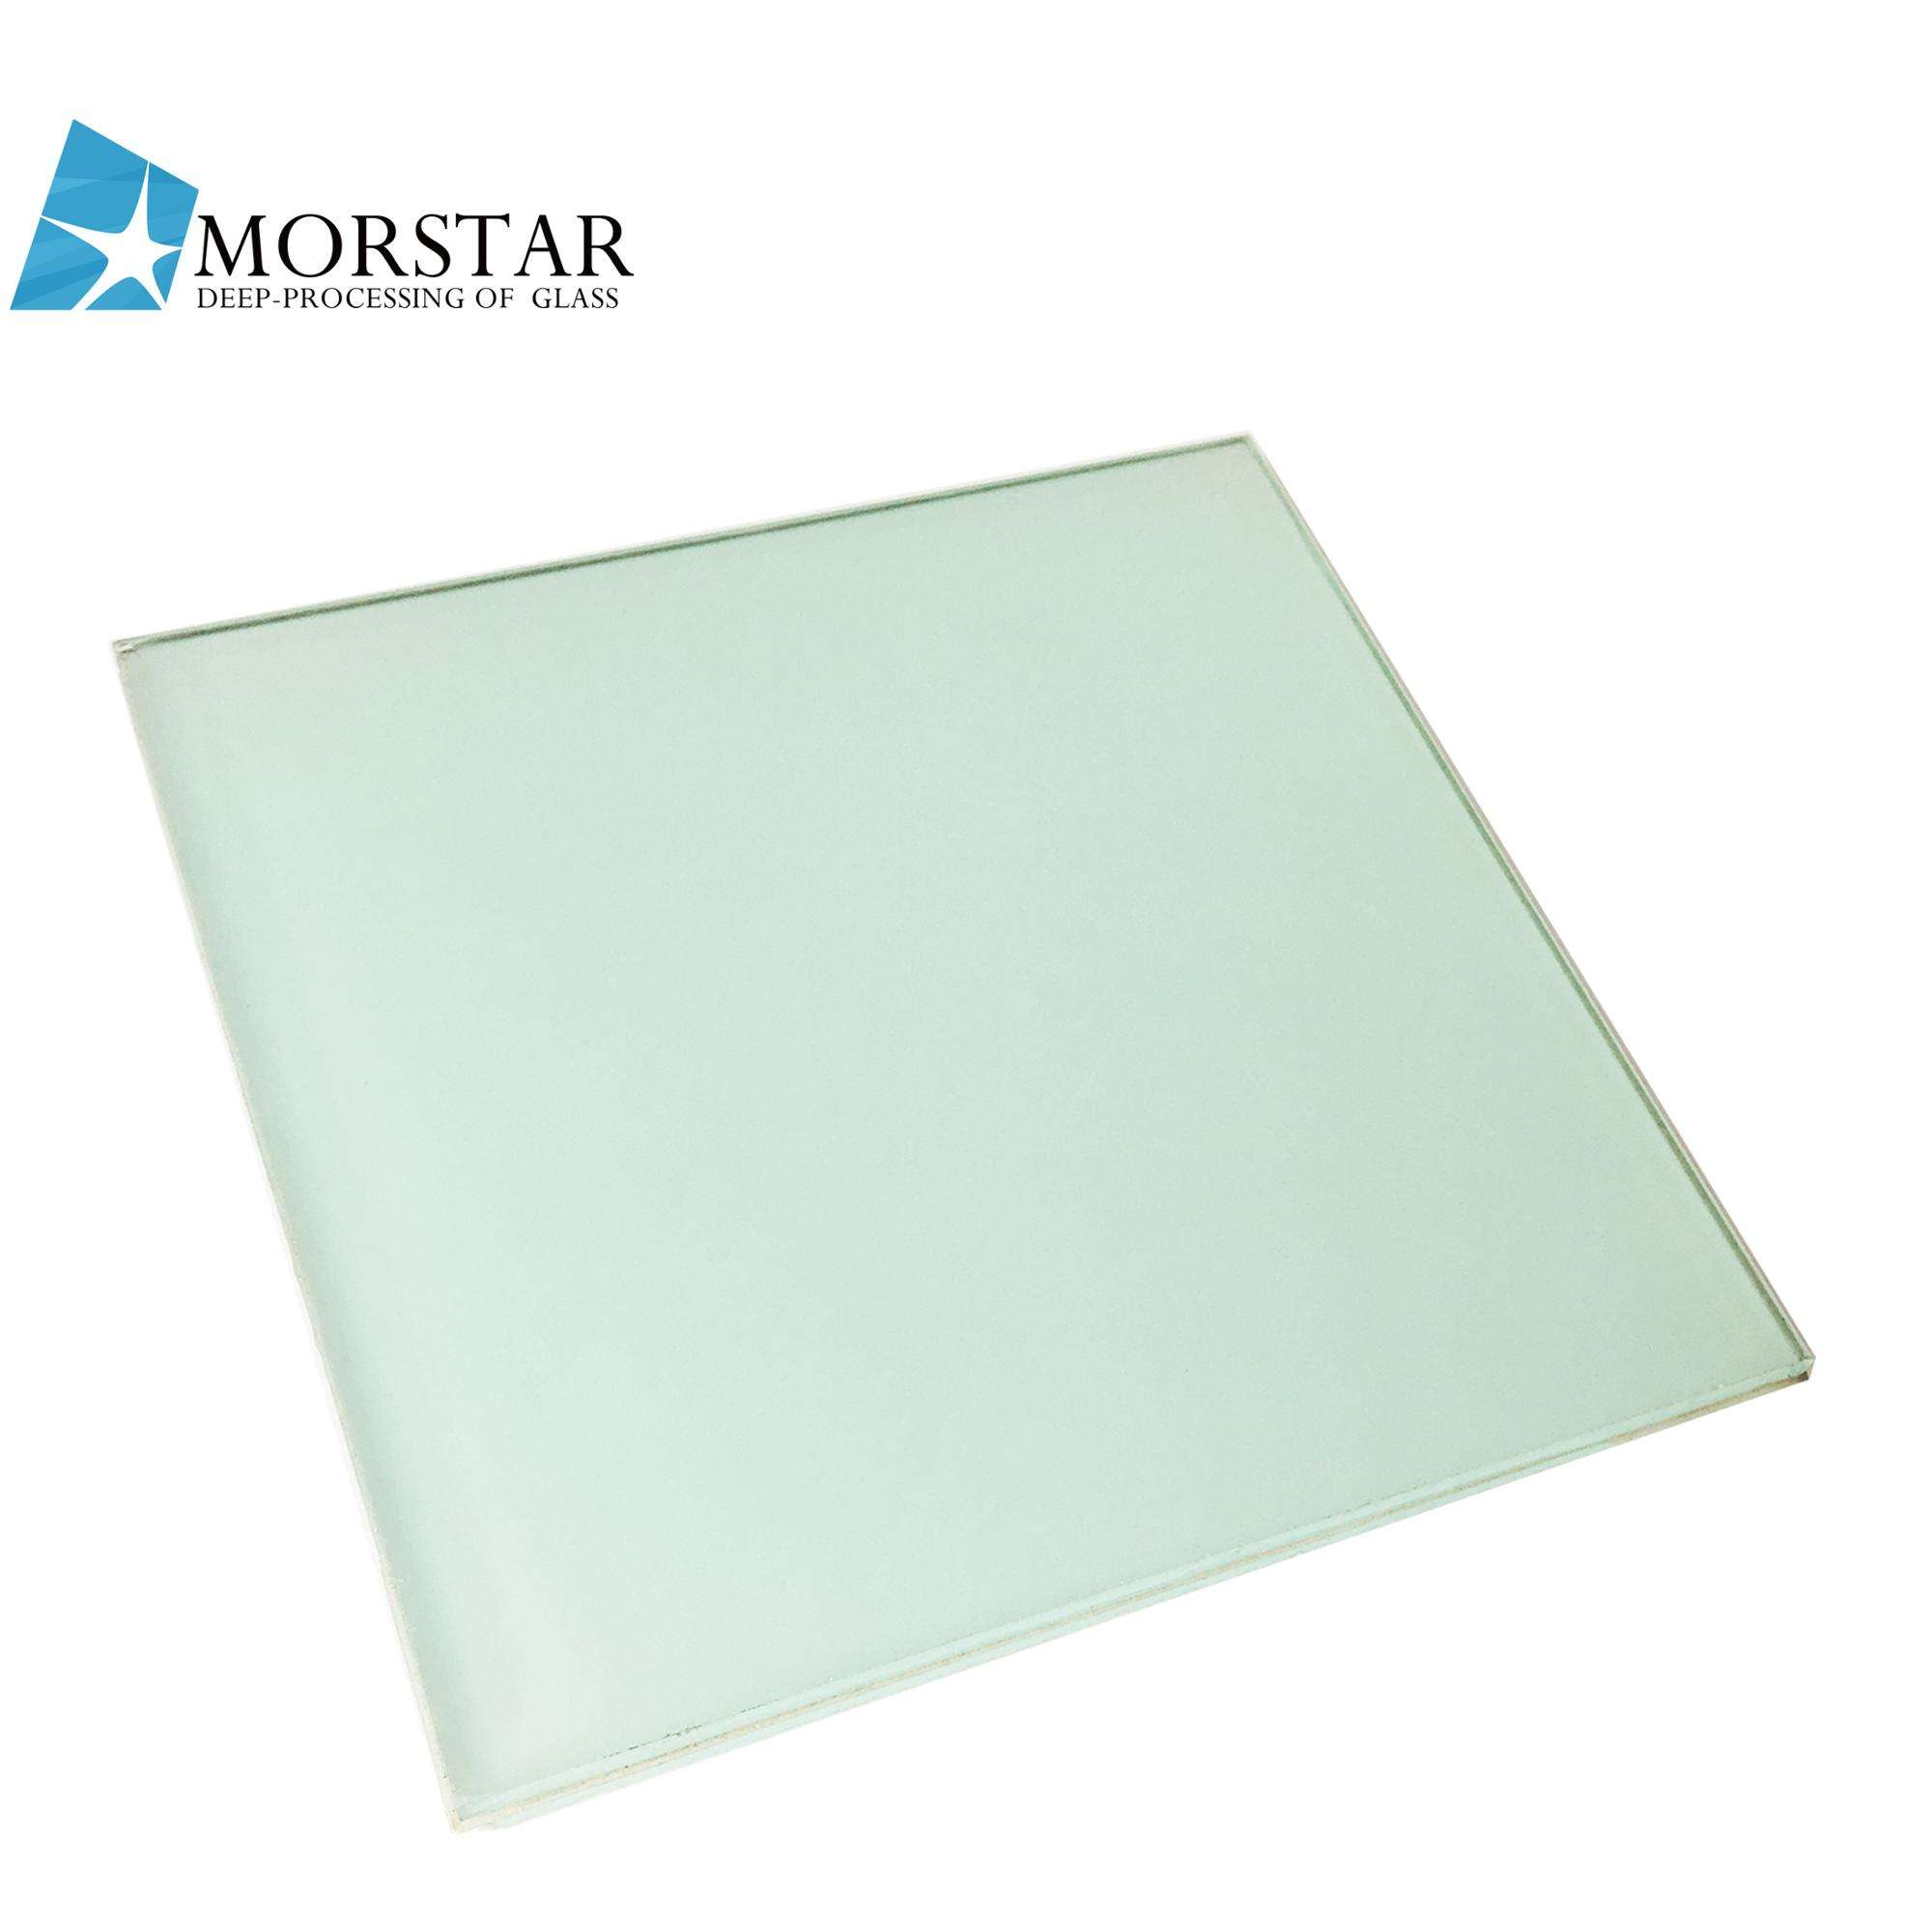 6.38mm Milky White Laminated Glass 3+0.38+3 White PVB Laminated Glass Manufacturer